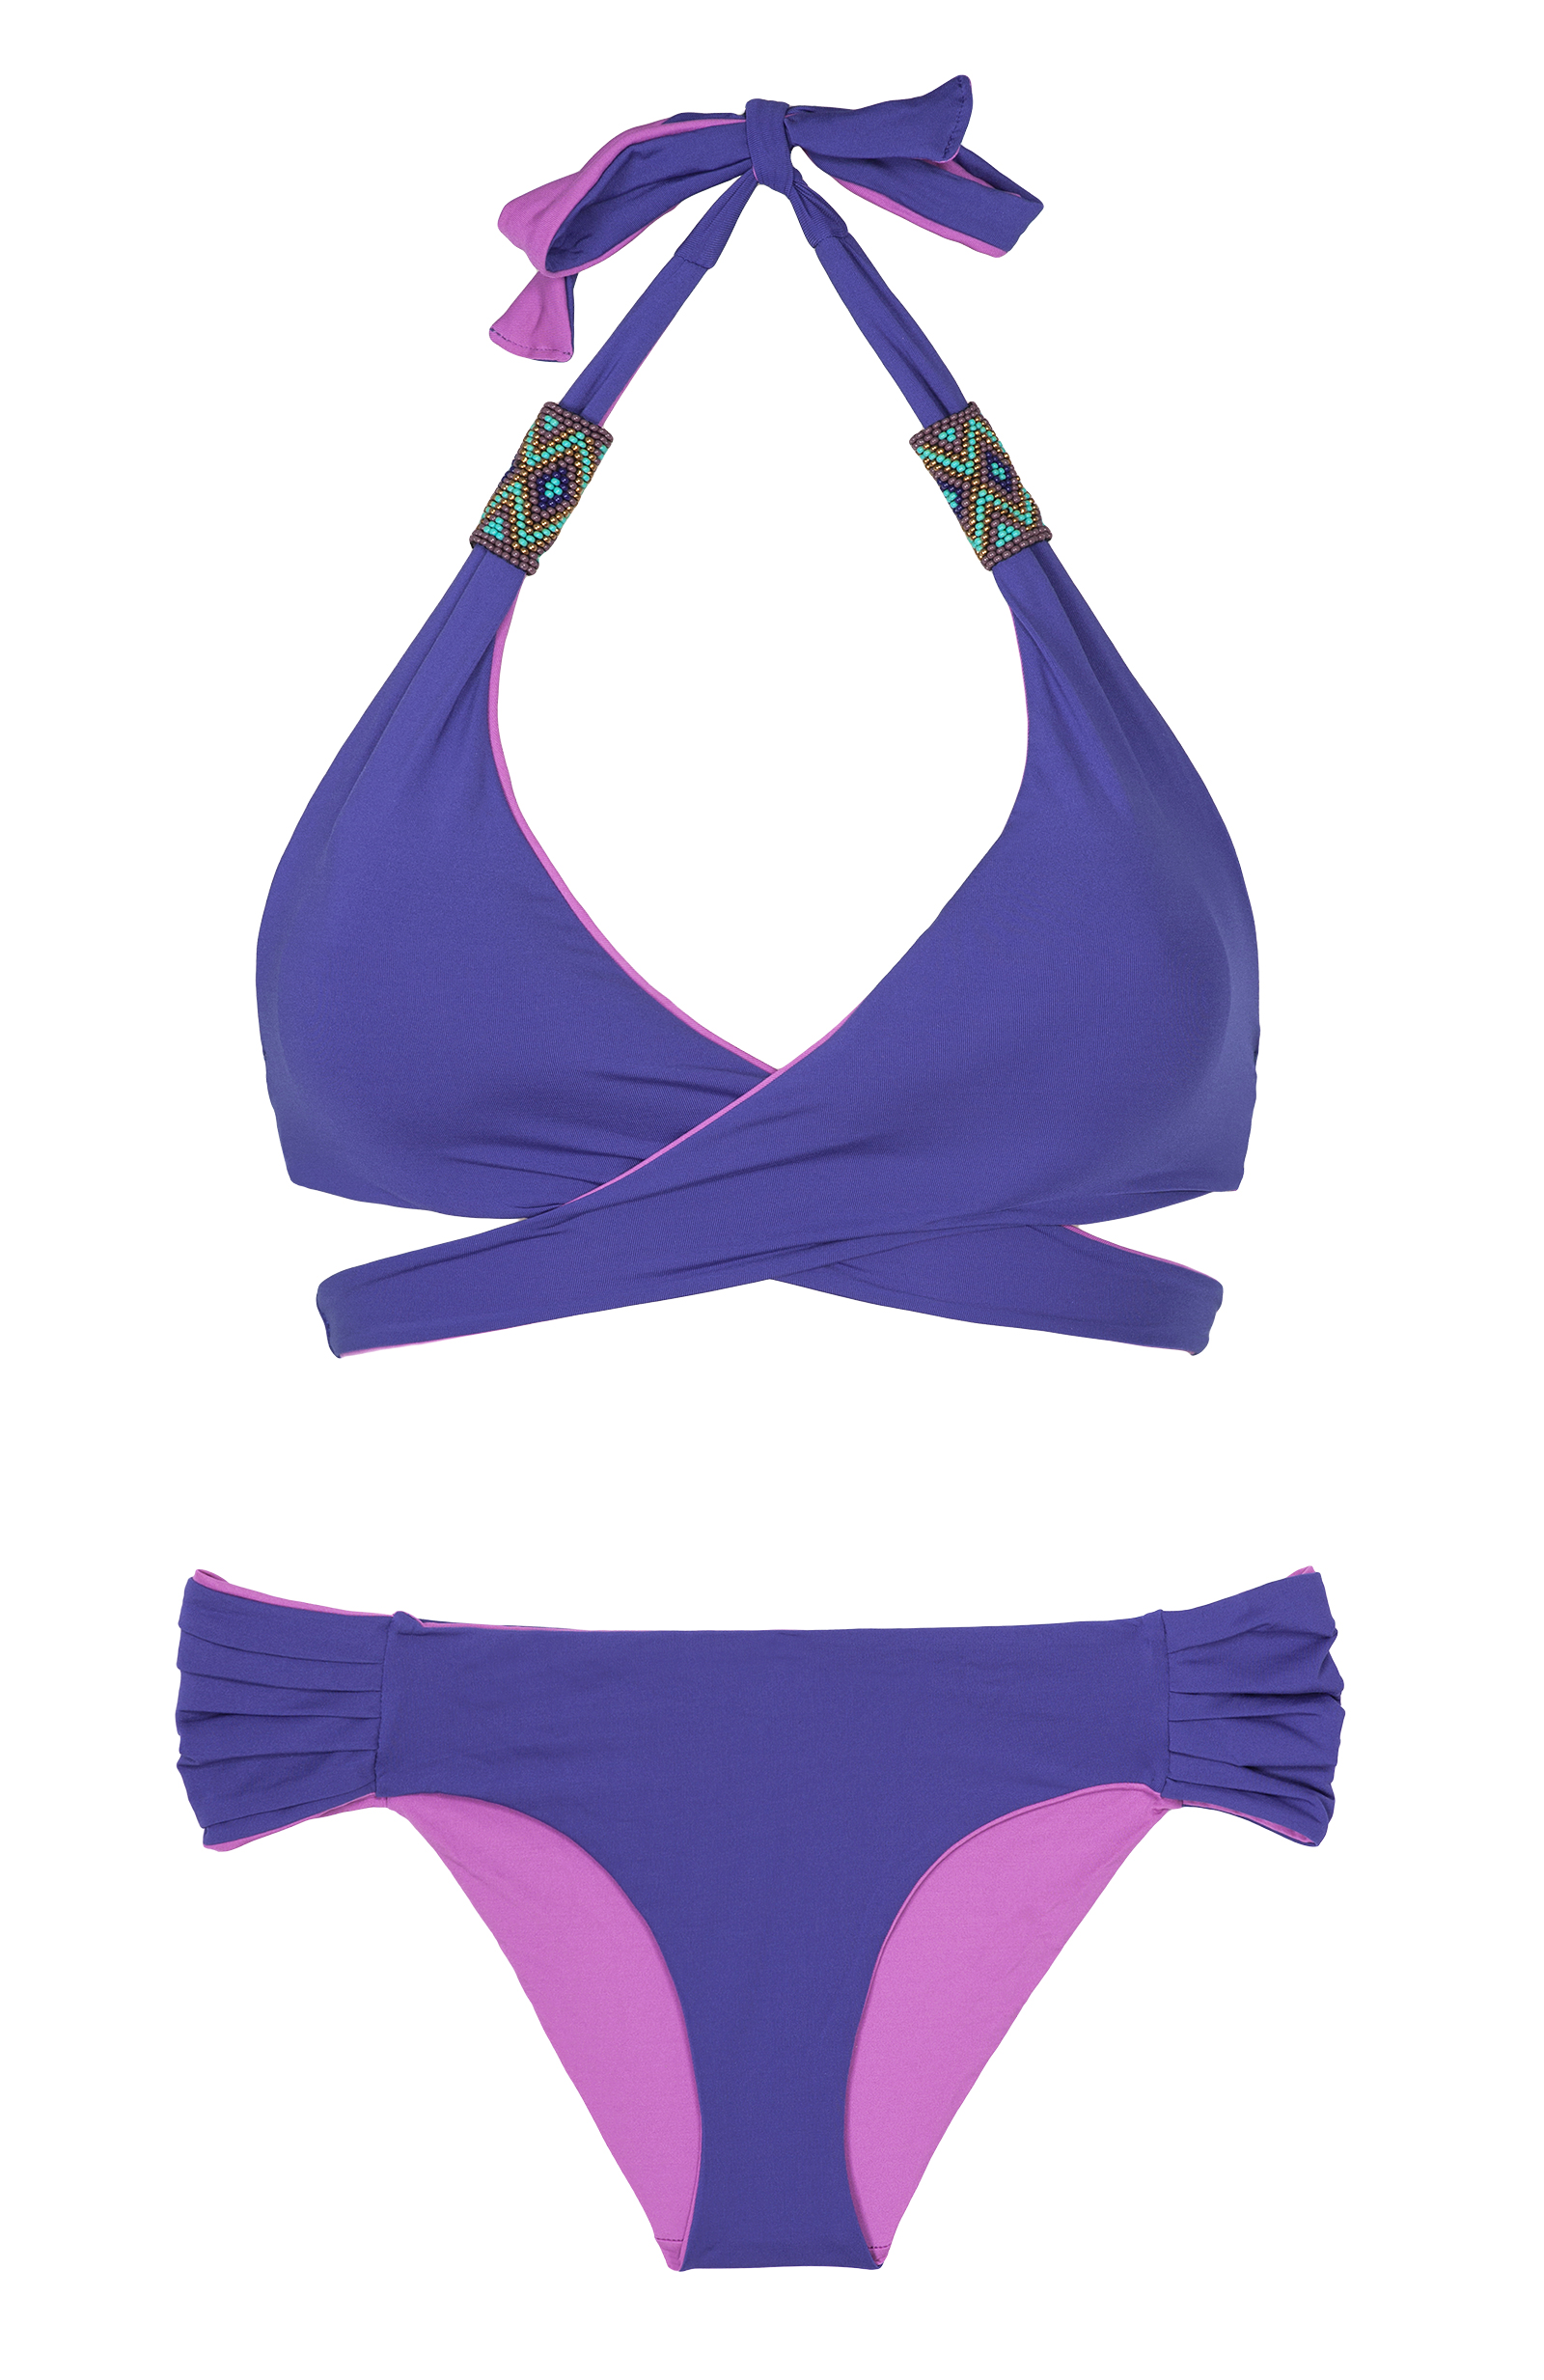 Purple Mood saha cross-over triangle bikini, reversible blue/purple - mood